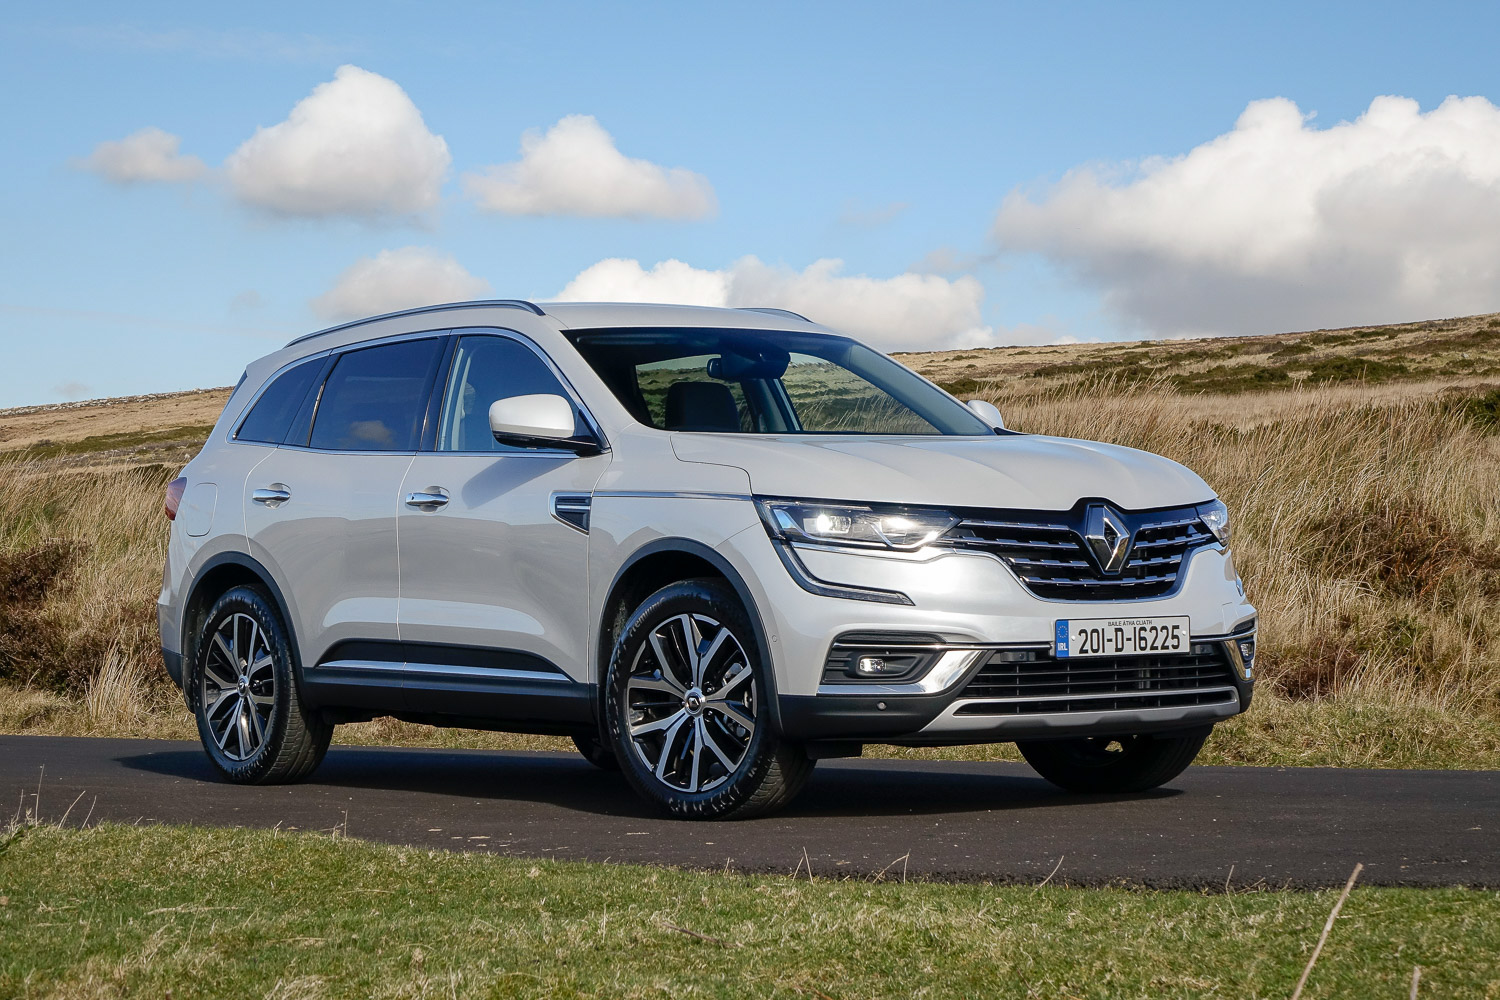 Car Reviews | Renault Koleos dCi 150 diesel (2020) | CompleteCar.ie